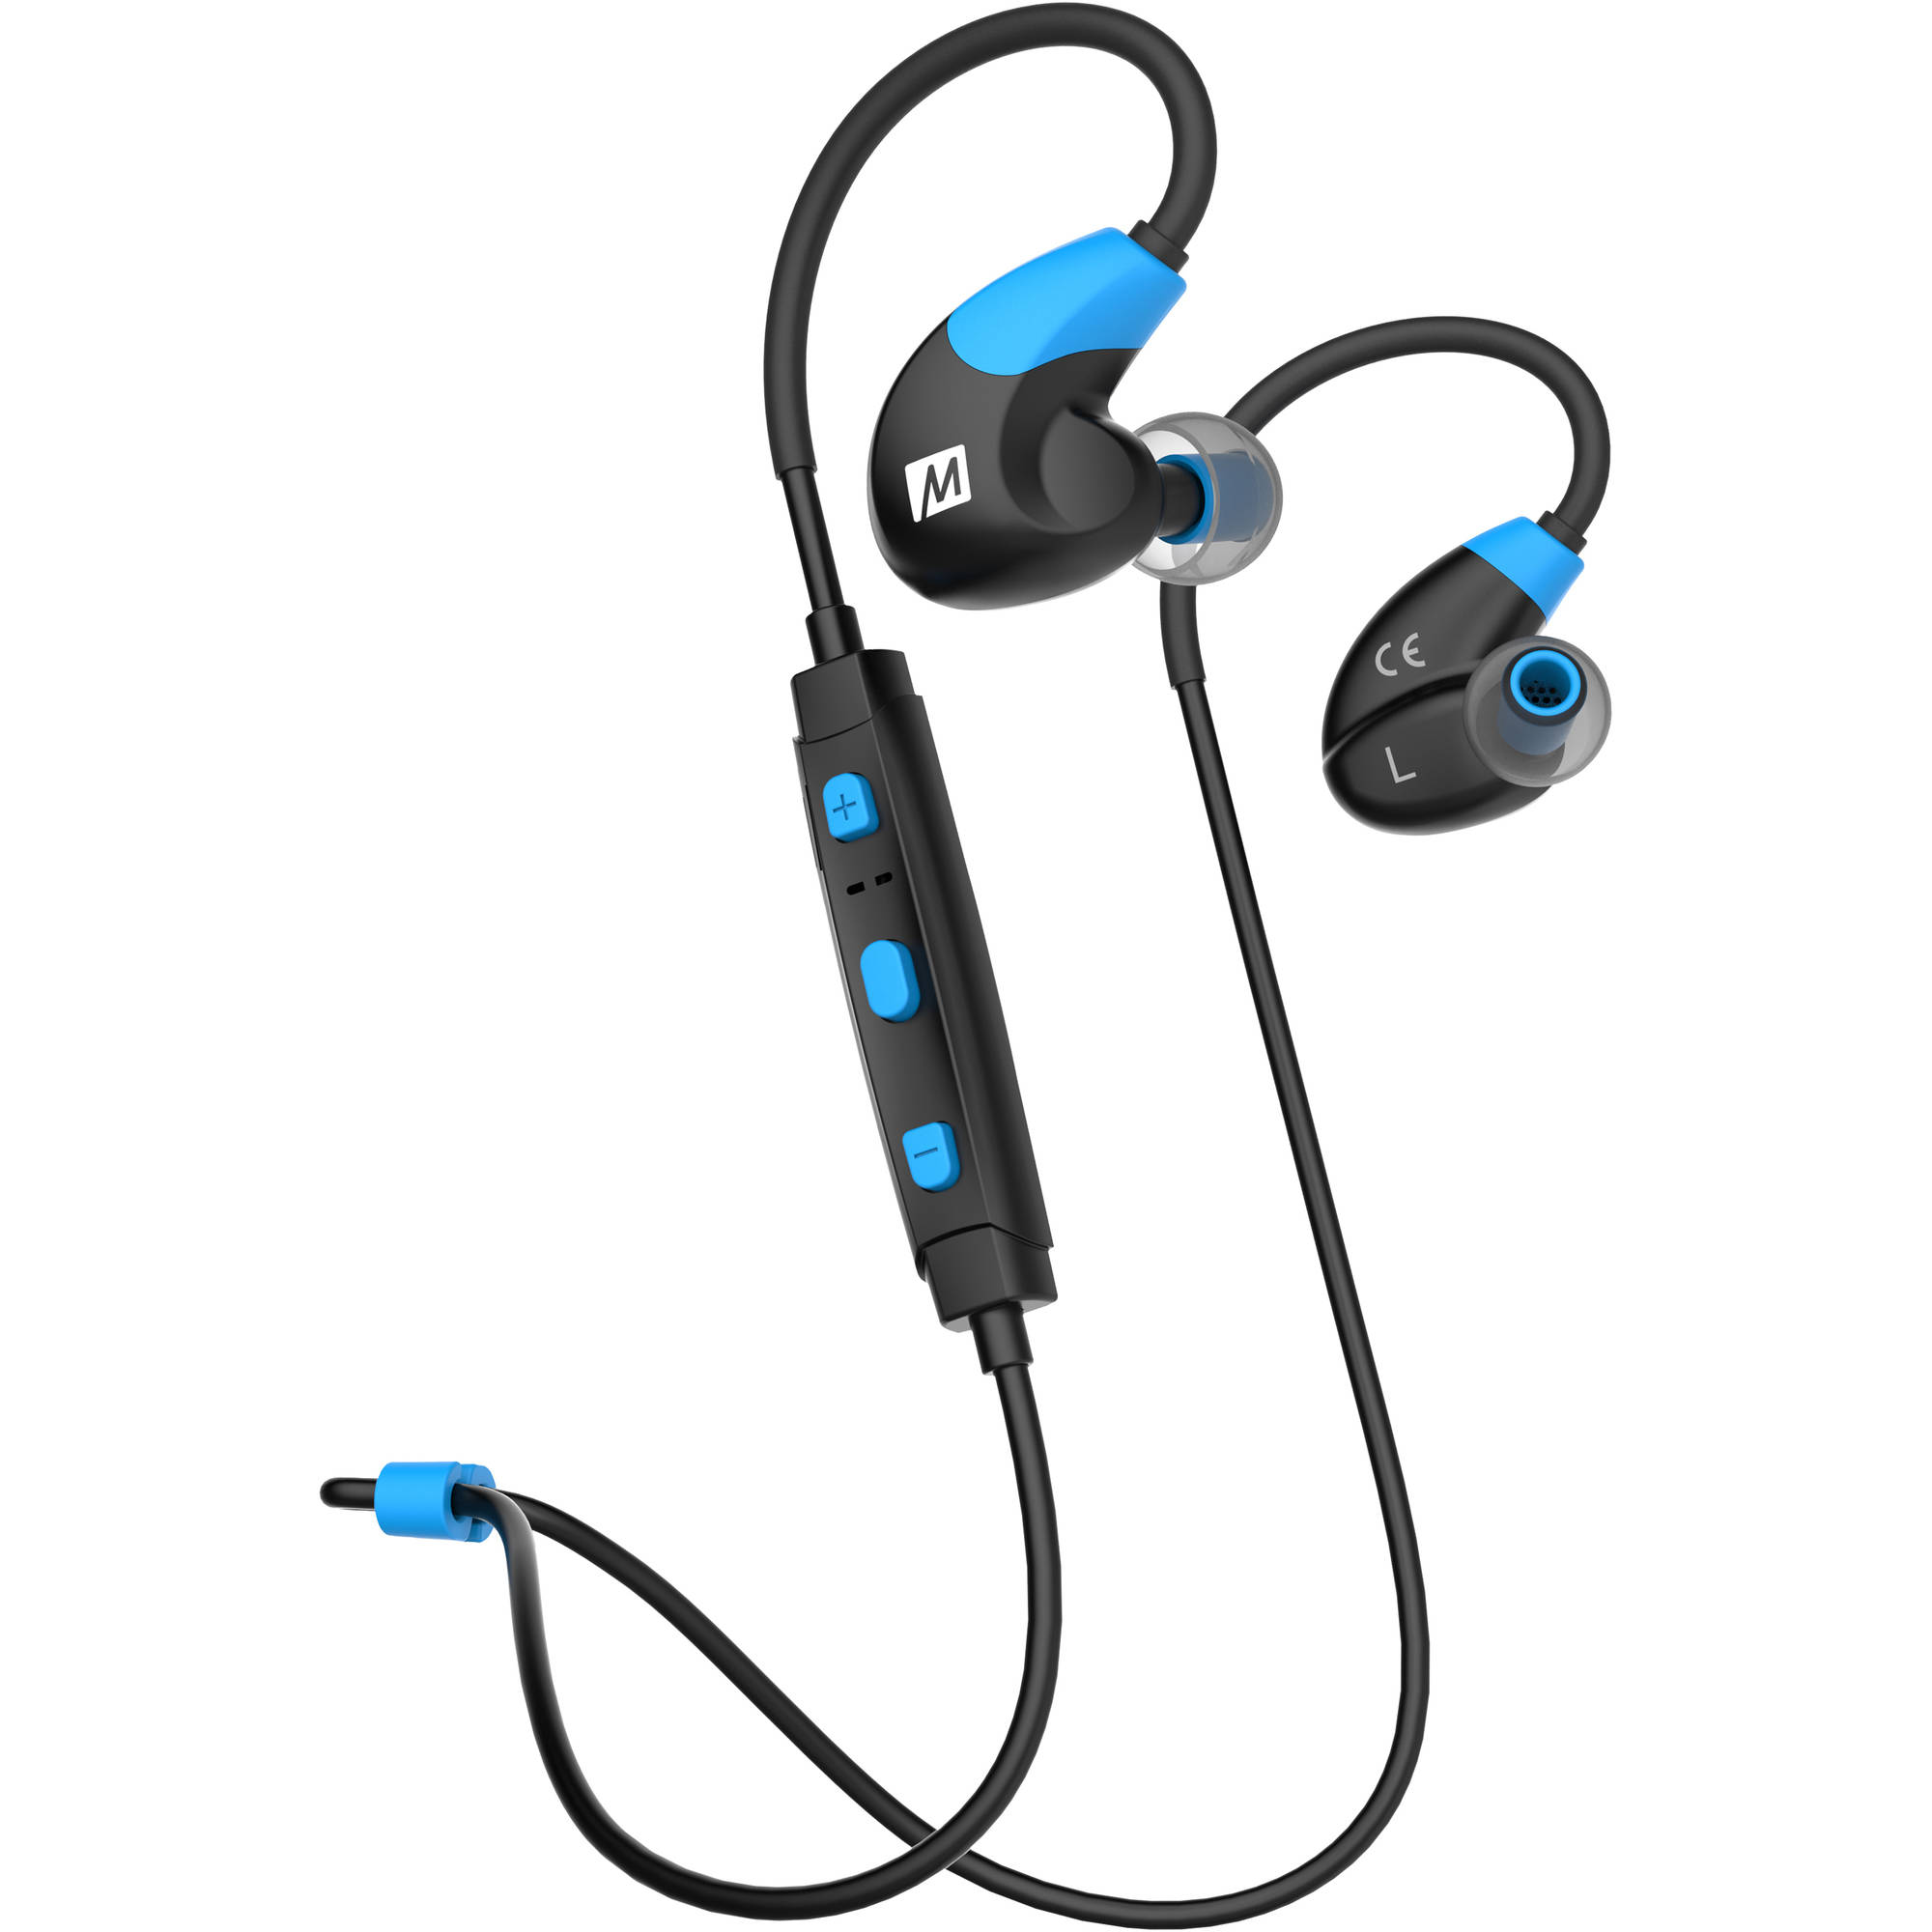 MEE audio X7 Stereo Bluetooth Wireless Sports In-Ear Headphones, Blue